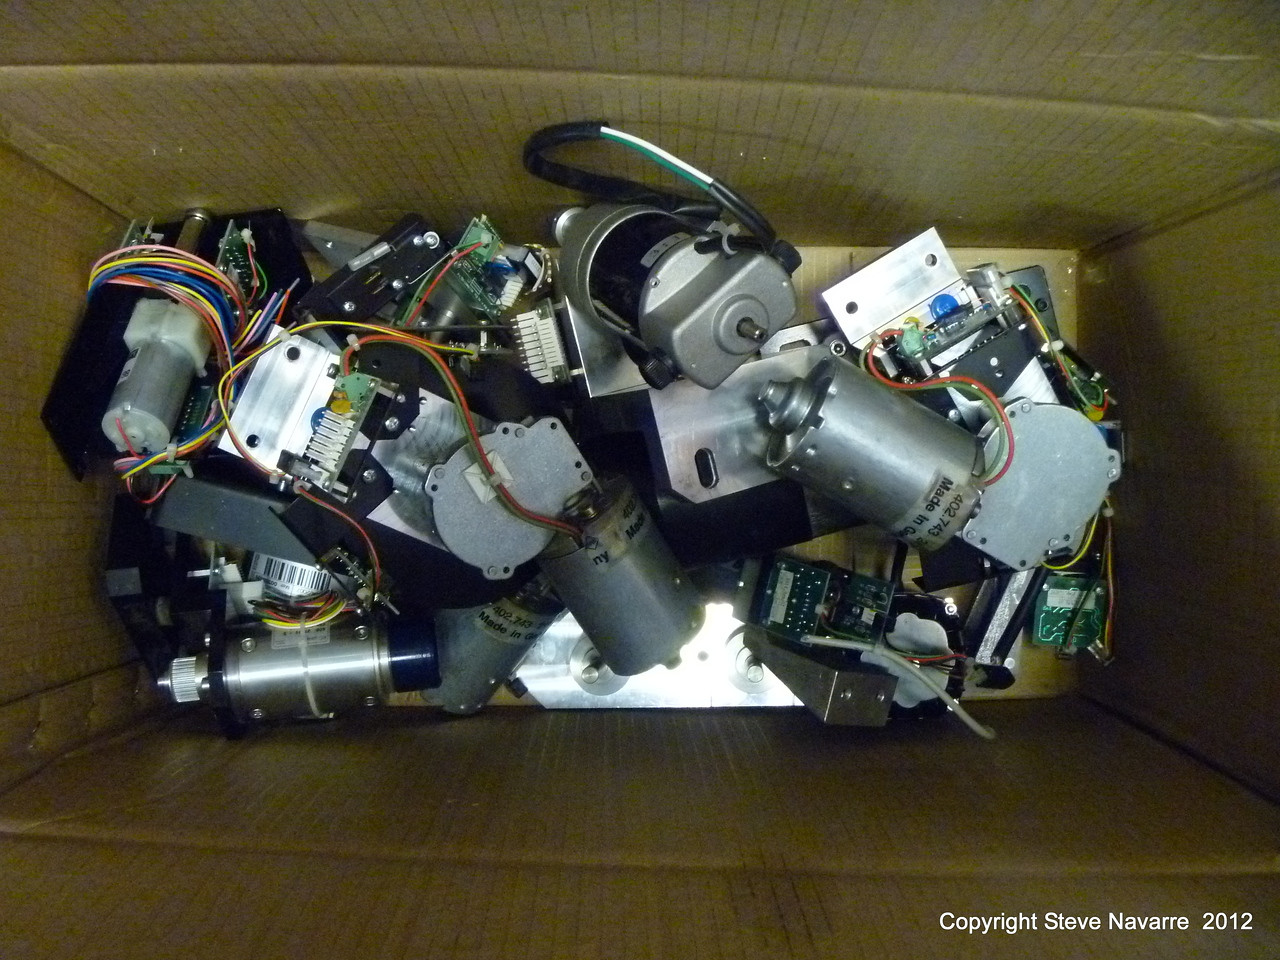 All the various motors.